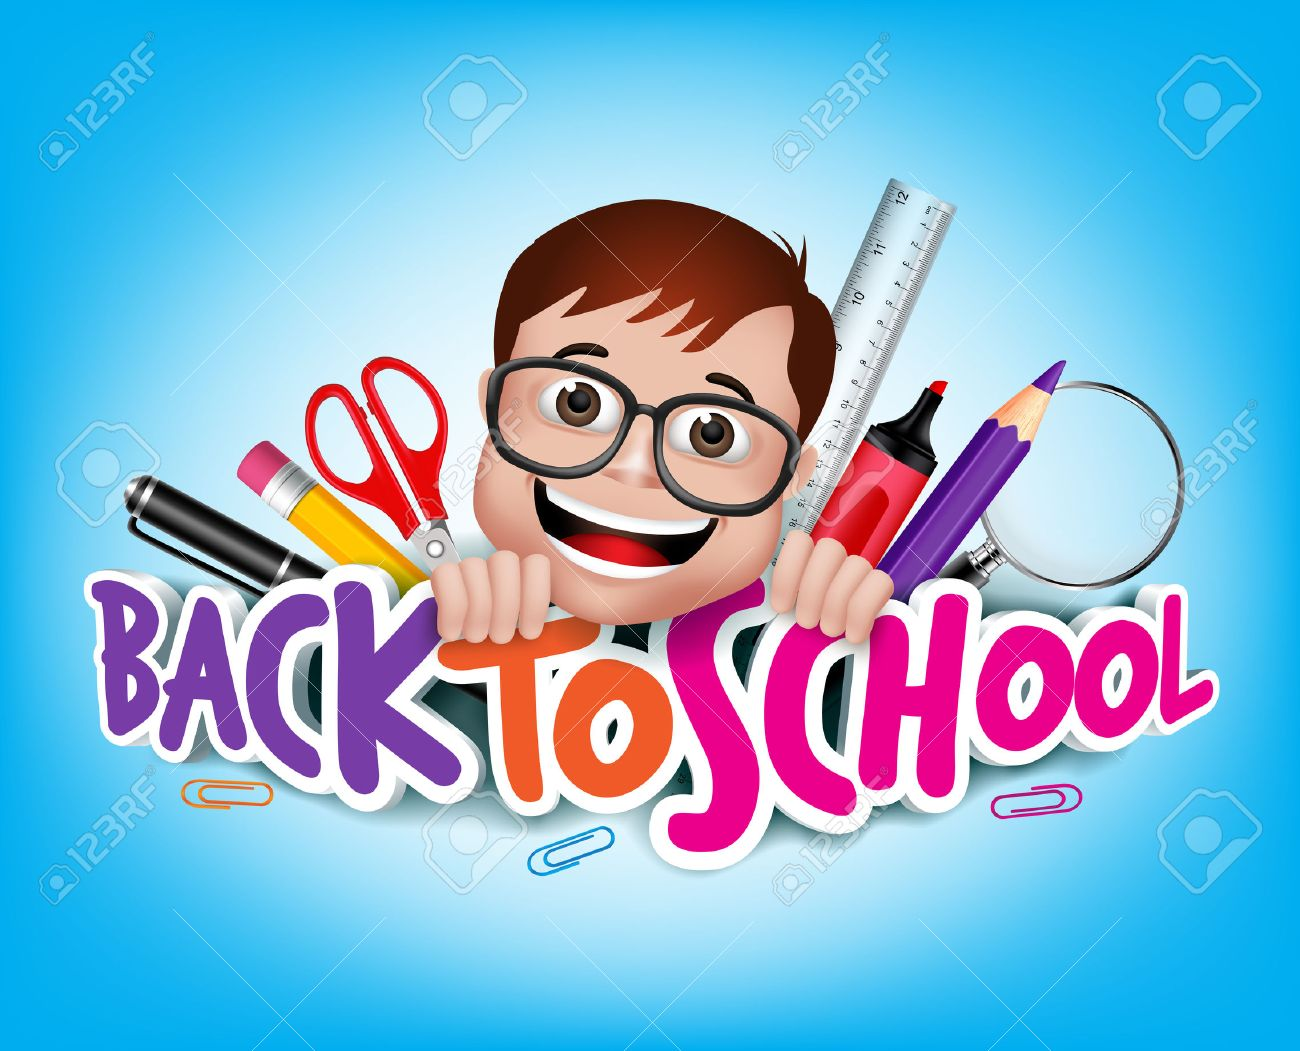 Colorful Realistic 3D Back to School Title Texts with Nerd Genius Student Happy Smiling with School Items. - 43287197